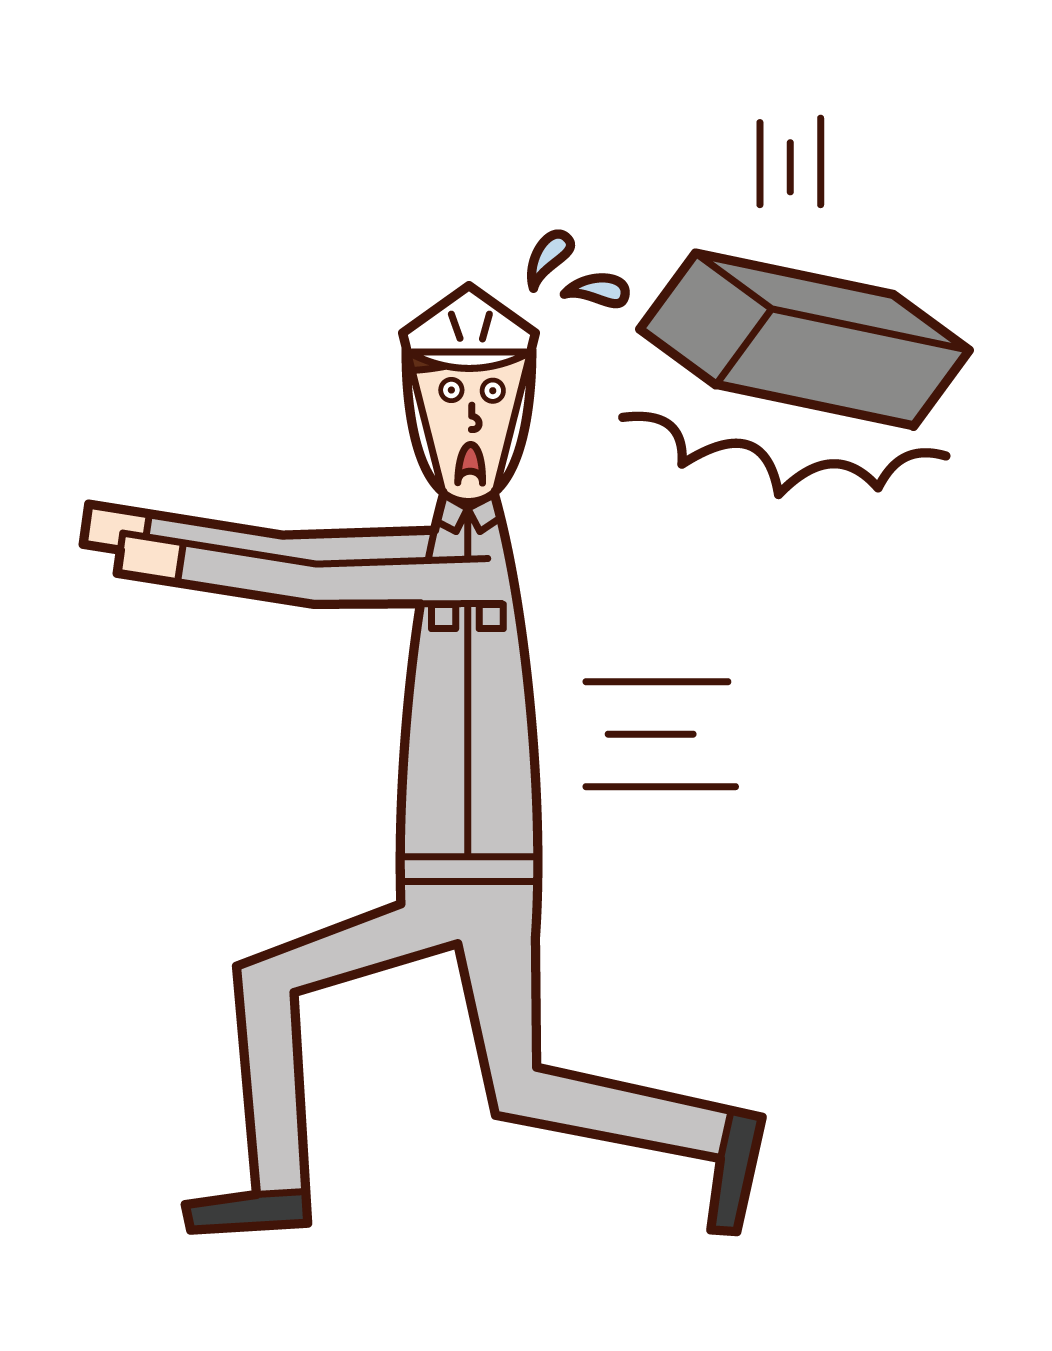 Illustration of falling object caution (man)